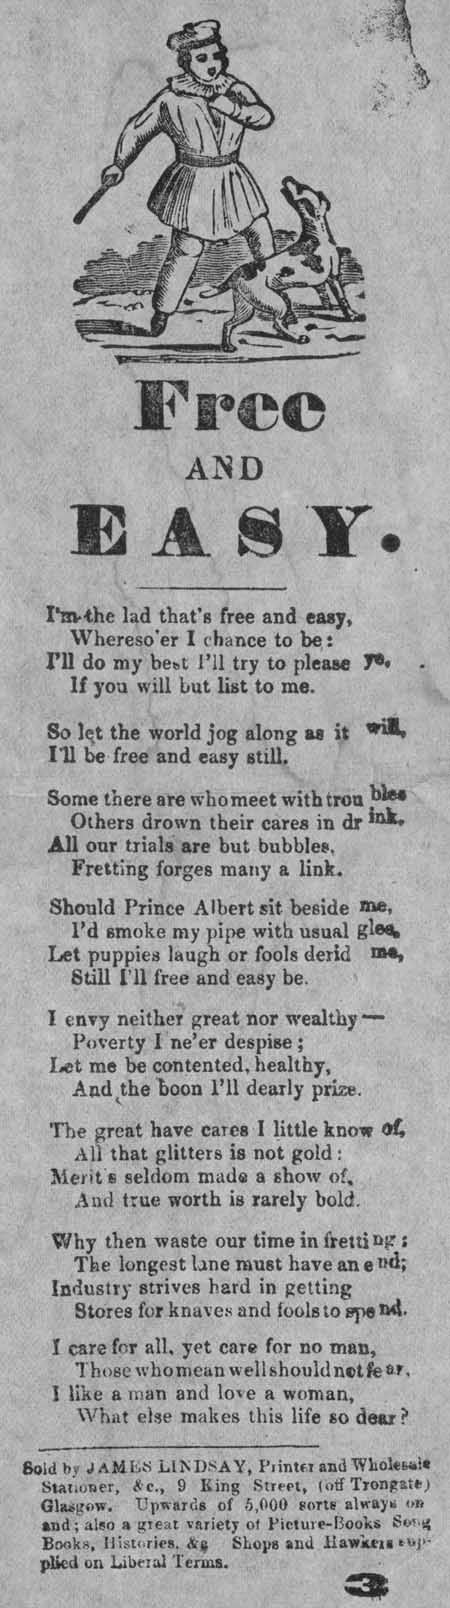 Broadside ballad entitled 'Free and Easy'